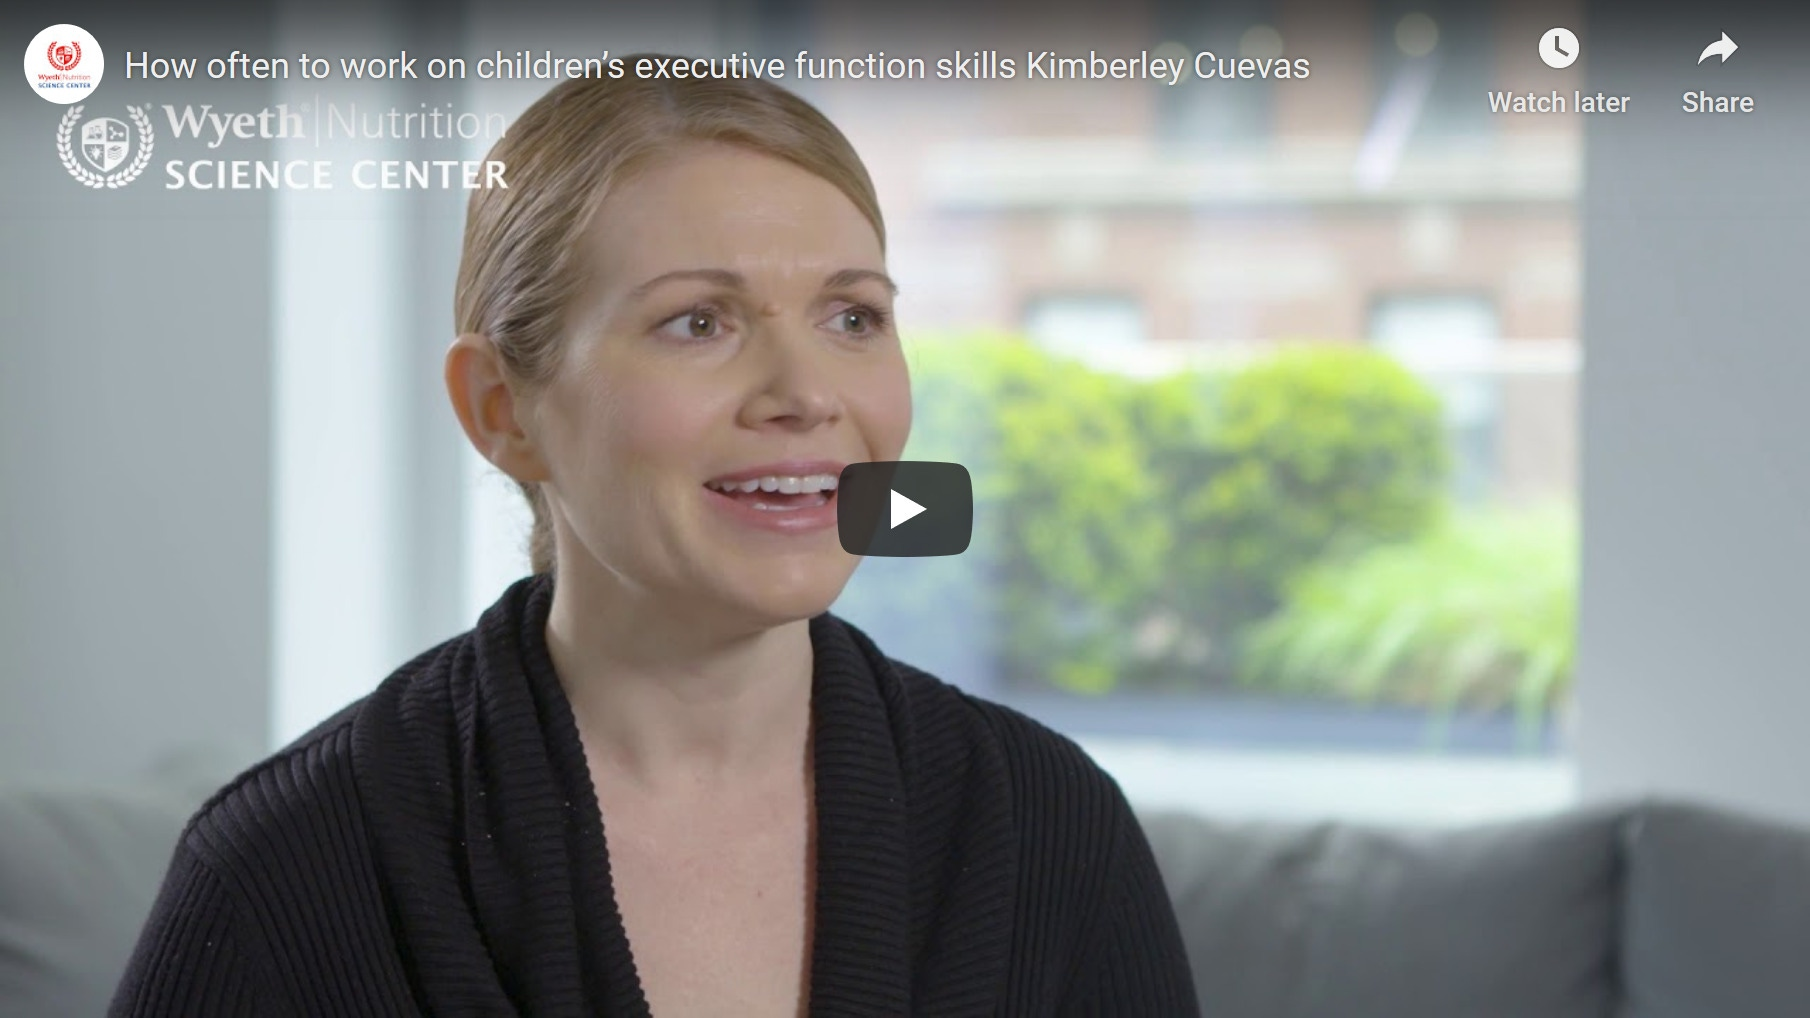 How often to work on children's executive function skills - Prof. Kimberley Cuevas